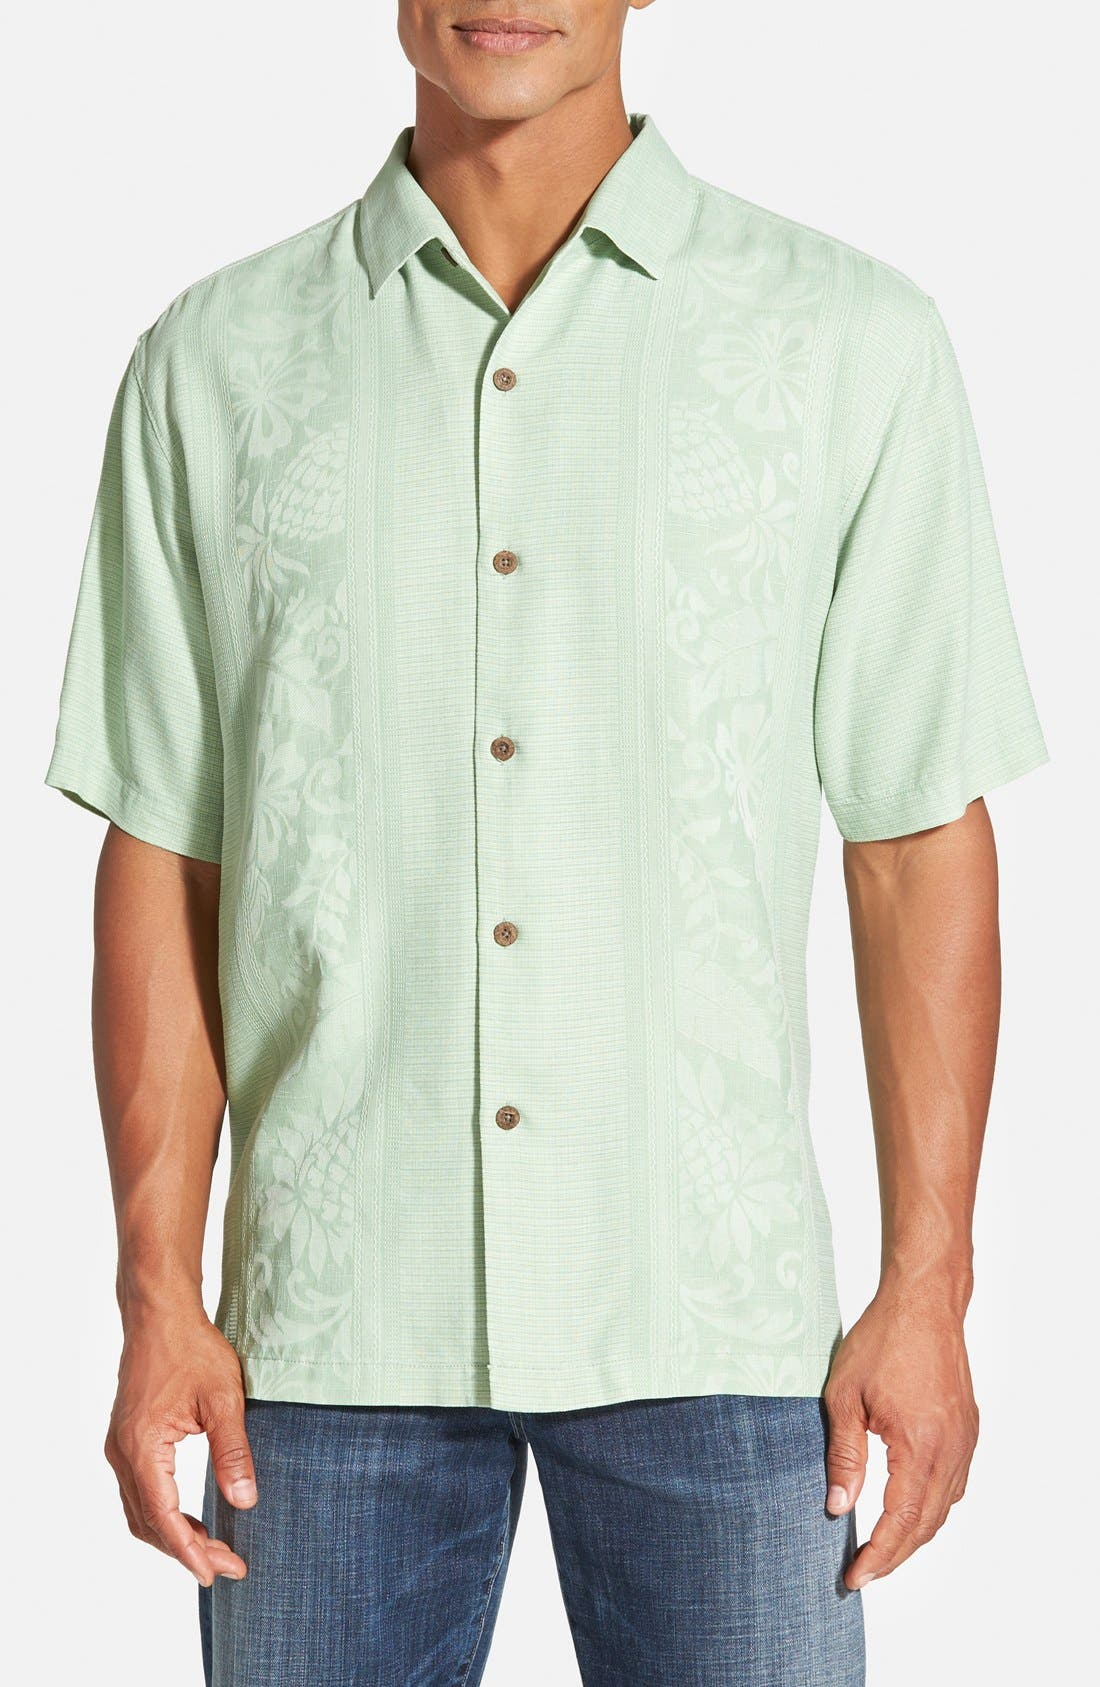 Alternate Image 1 Selected - Tommy Bahama 'Amazon' Original Fit Silk Jacquard Camp Shirt